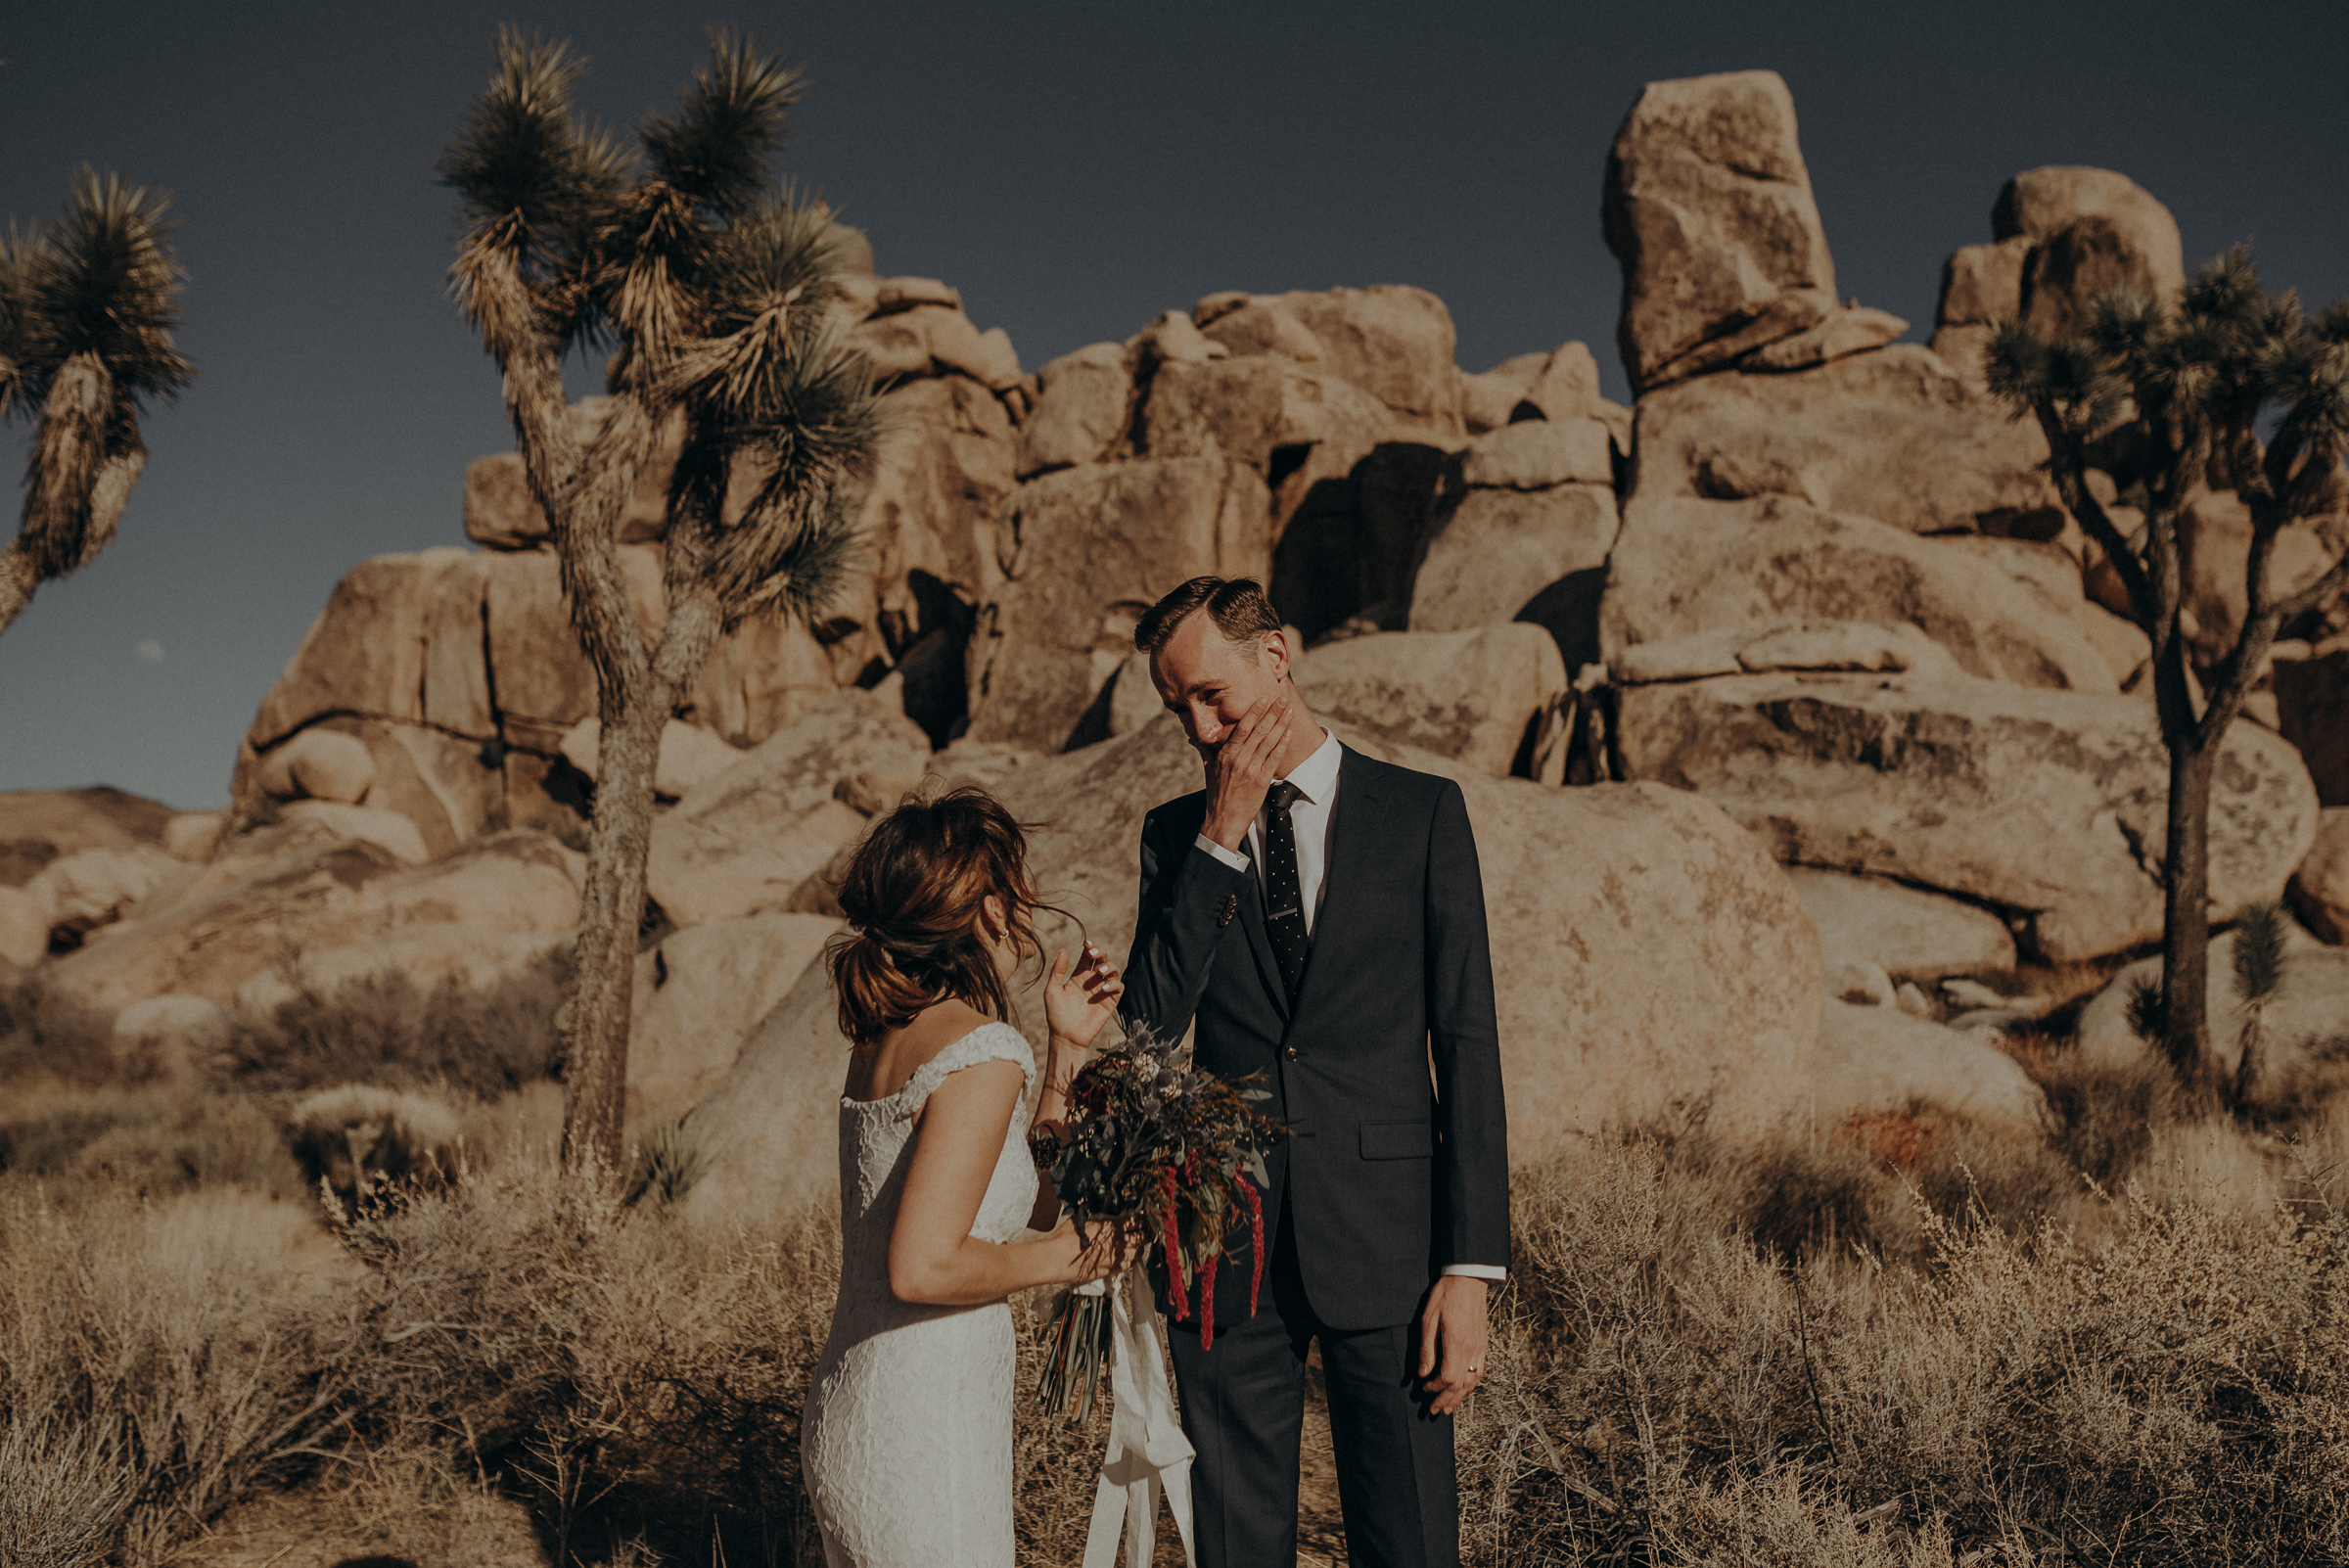 Joshua Tree Elopement - Los Angeles Wedding Photographers - IsaiahAndTaylor.com-037.jpg